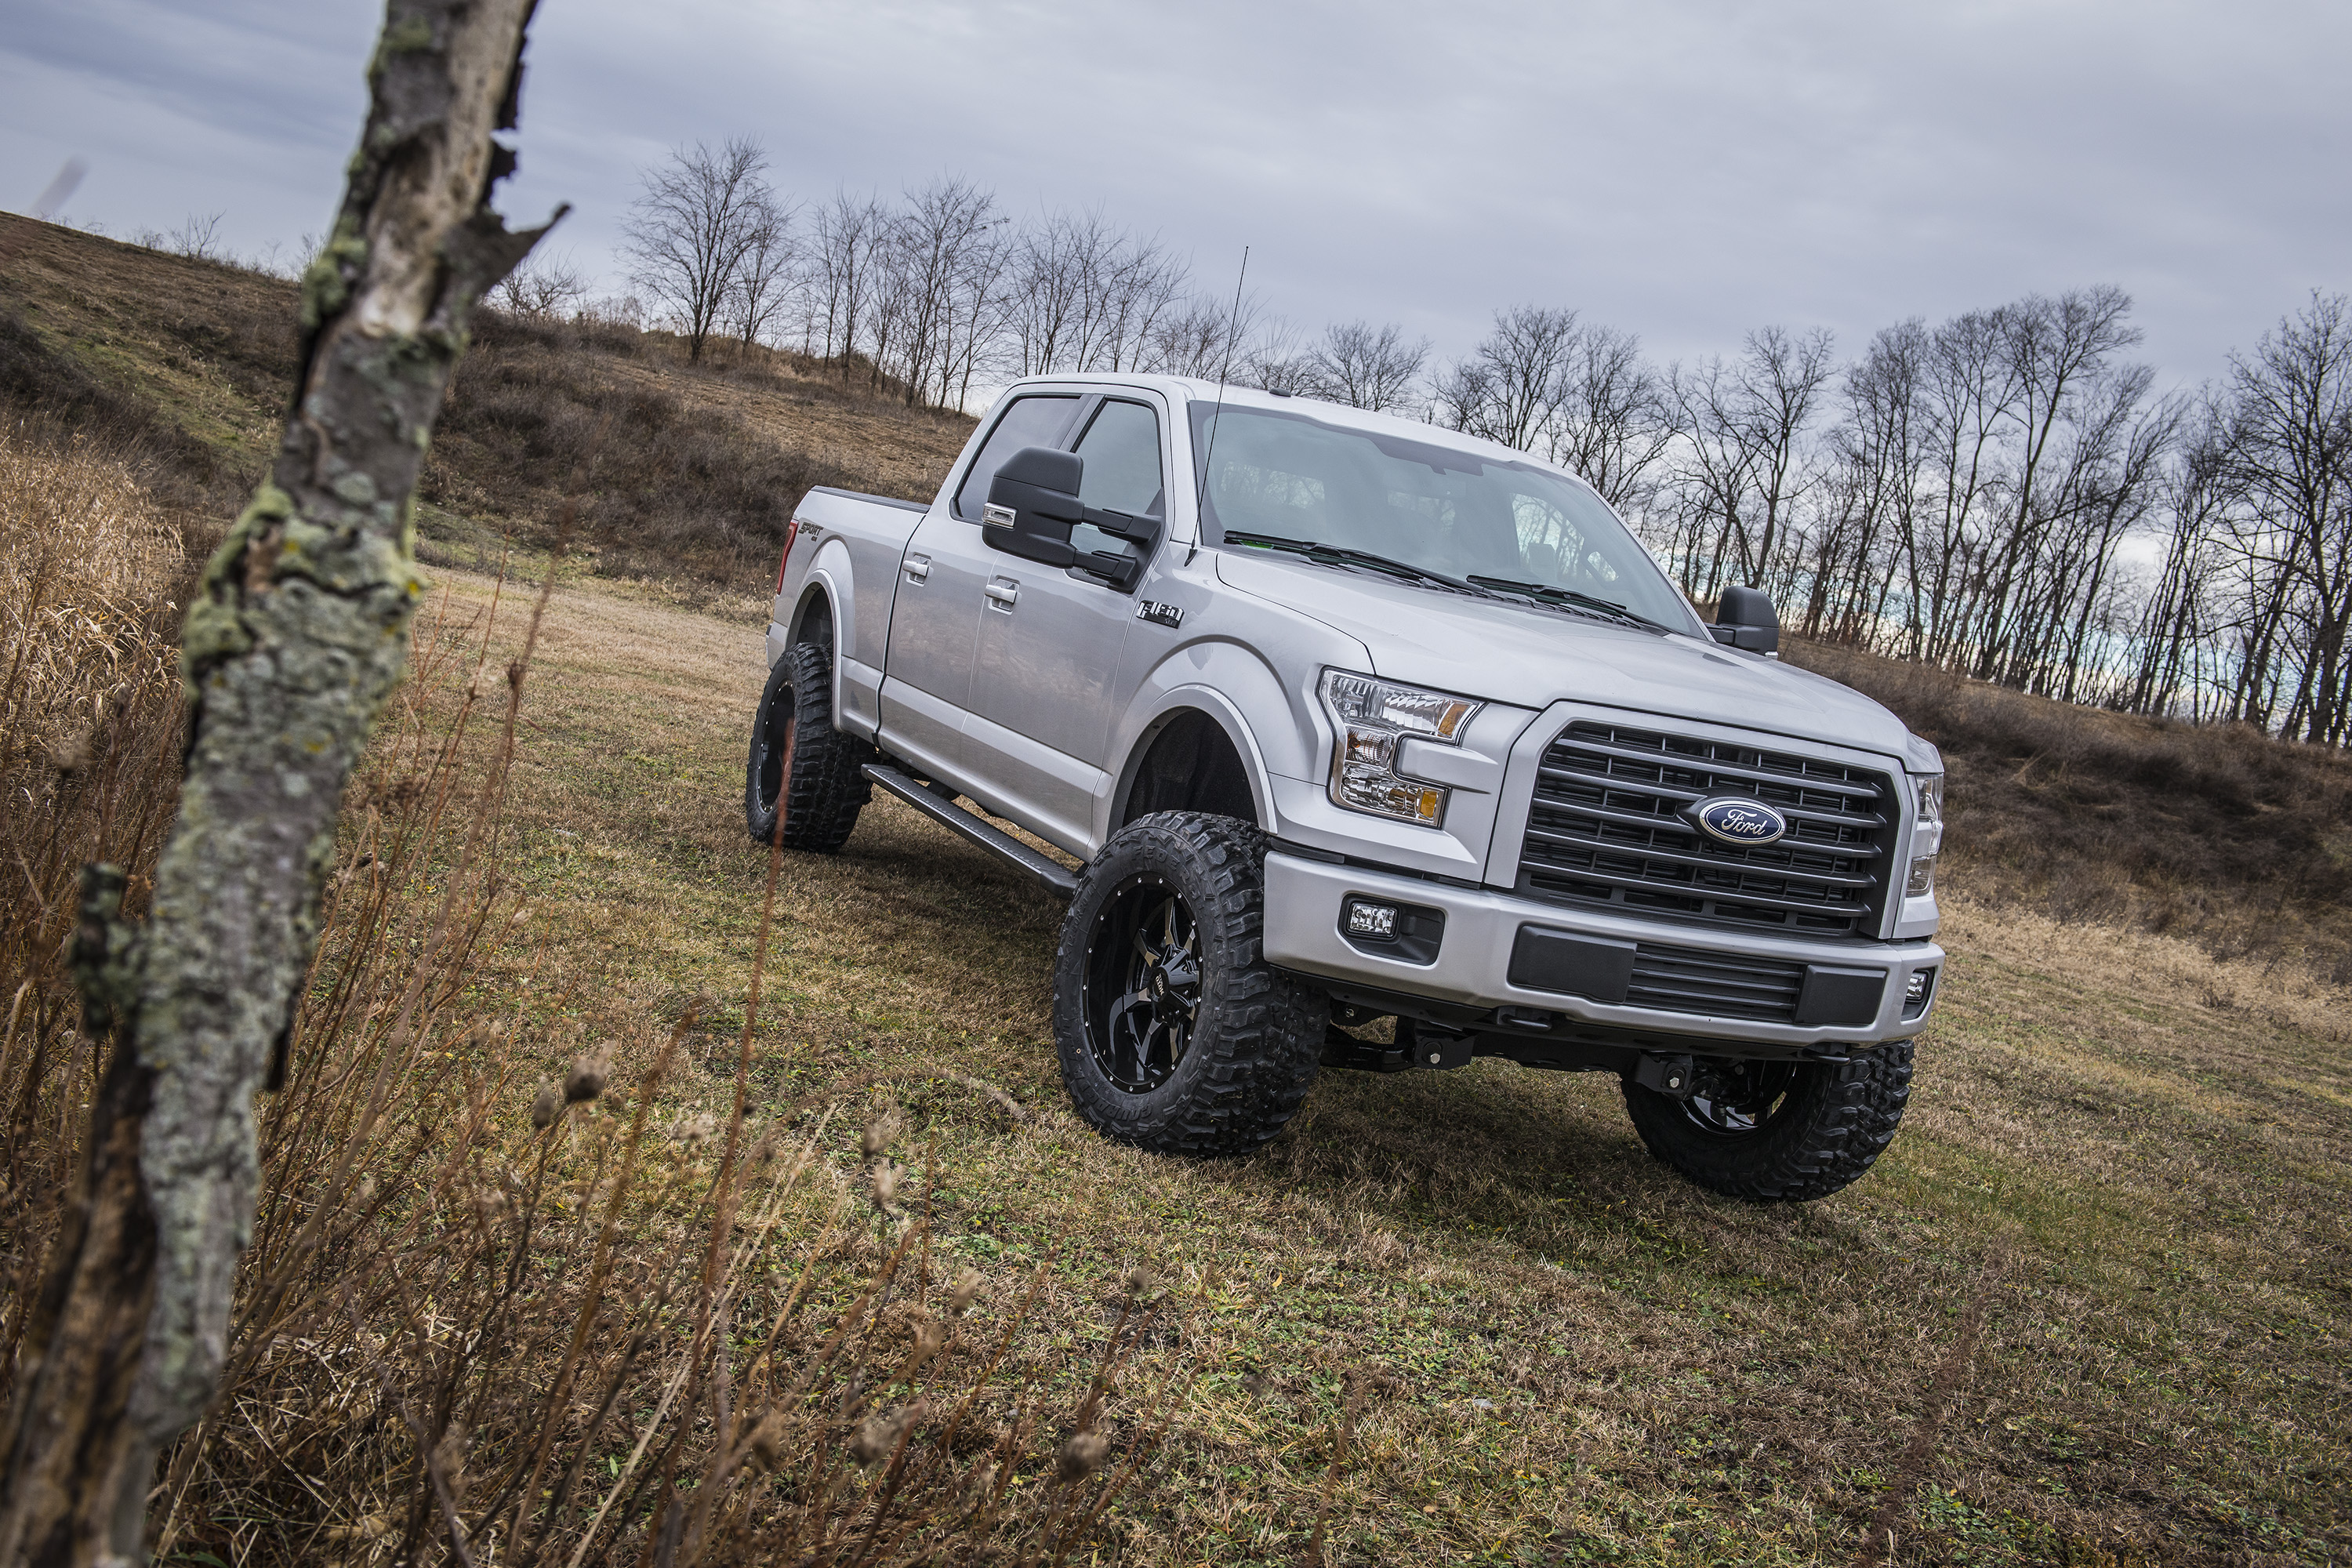 2016 F150 Lift Kit >> Bds Suspension Is Now Shipping 2016 Ford F150 Lift Kits